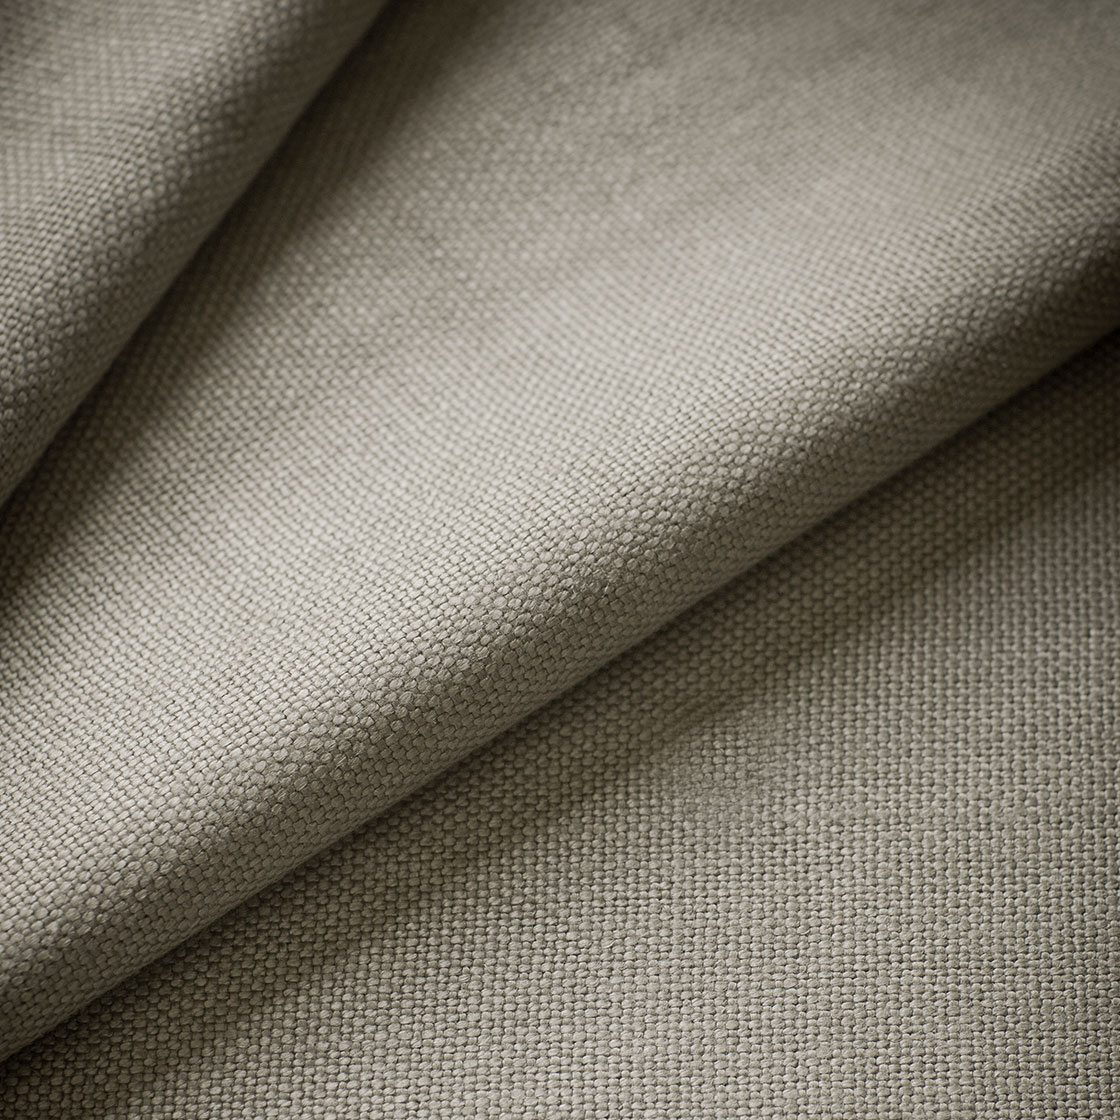 Donegal Linen - Oatmeal - Beaumont & Fletcher - Beaumont & Fletcher